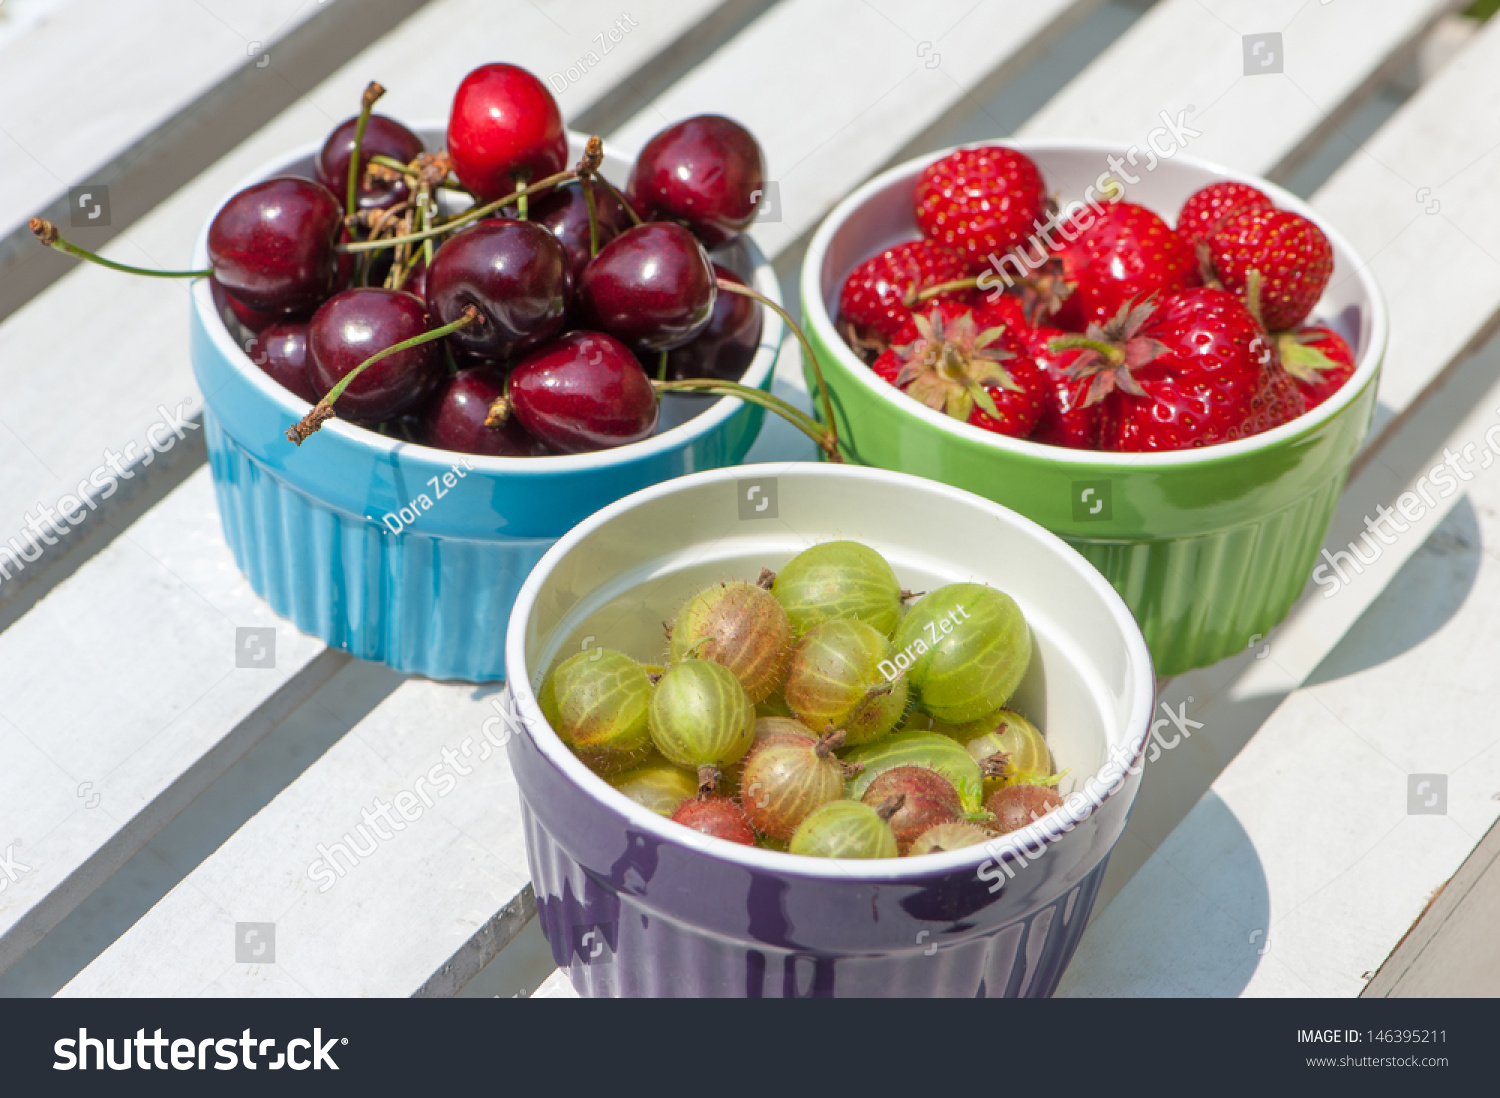 Colorful Fruit Bowl Fresh Fruits In Colorful Fruit Bowls Stock Photo 146395211